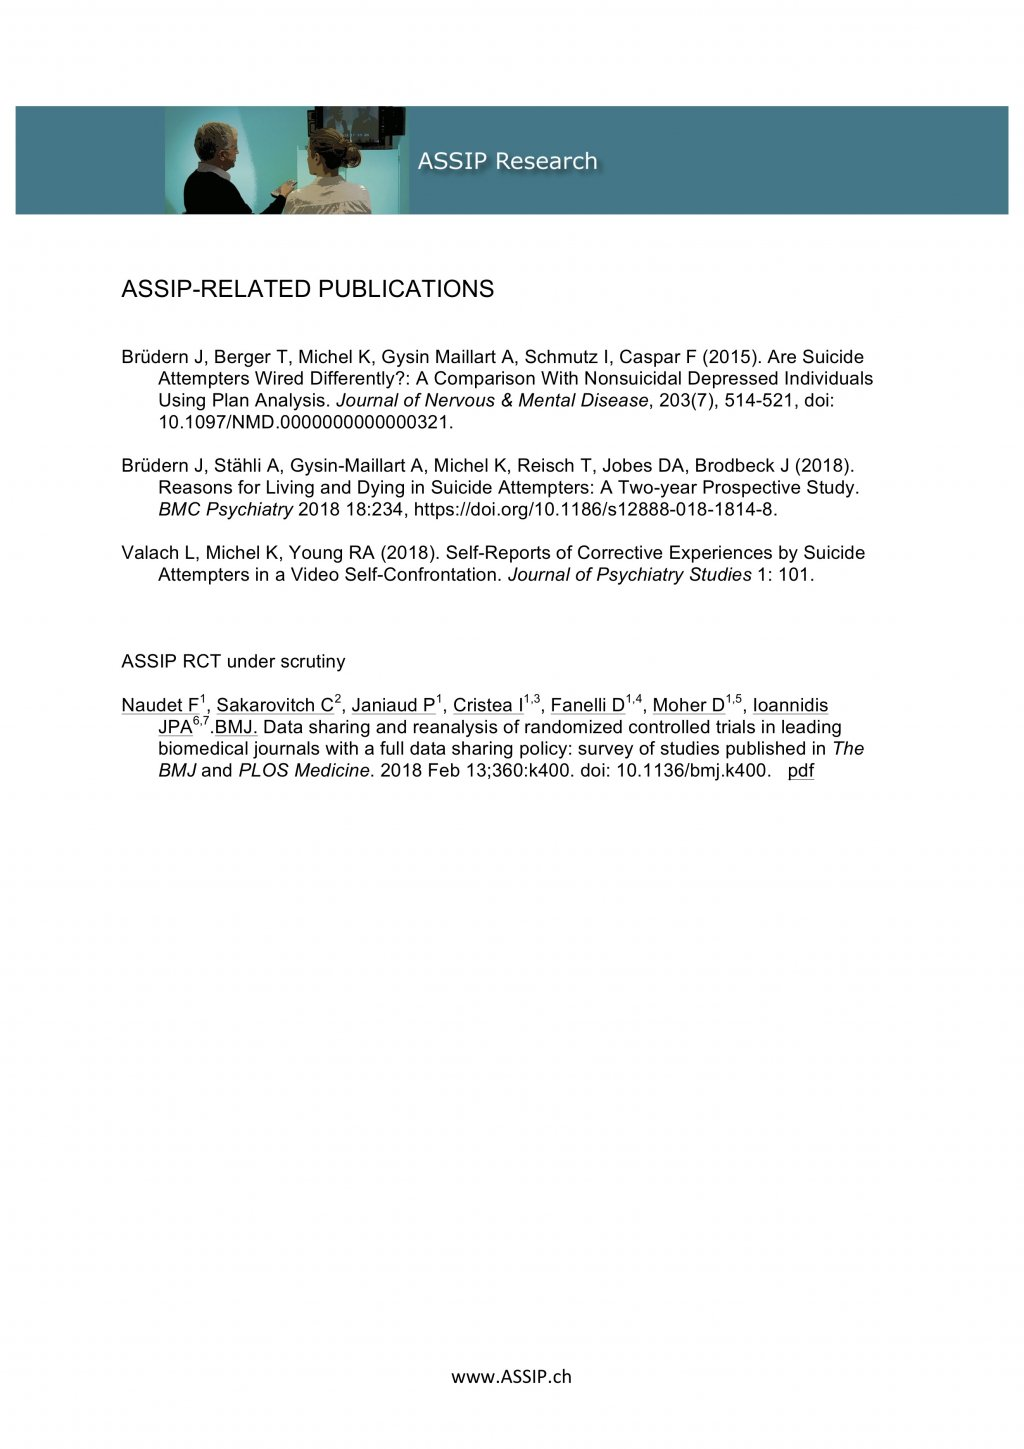 ASSIP-Related Publications